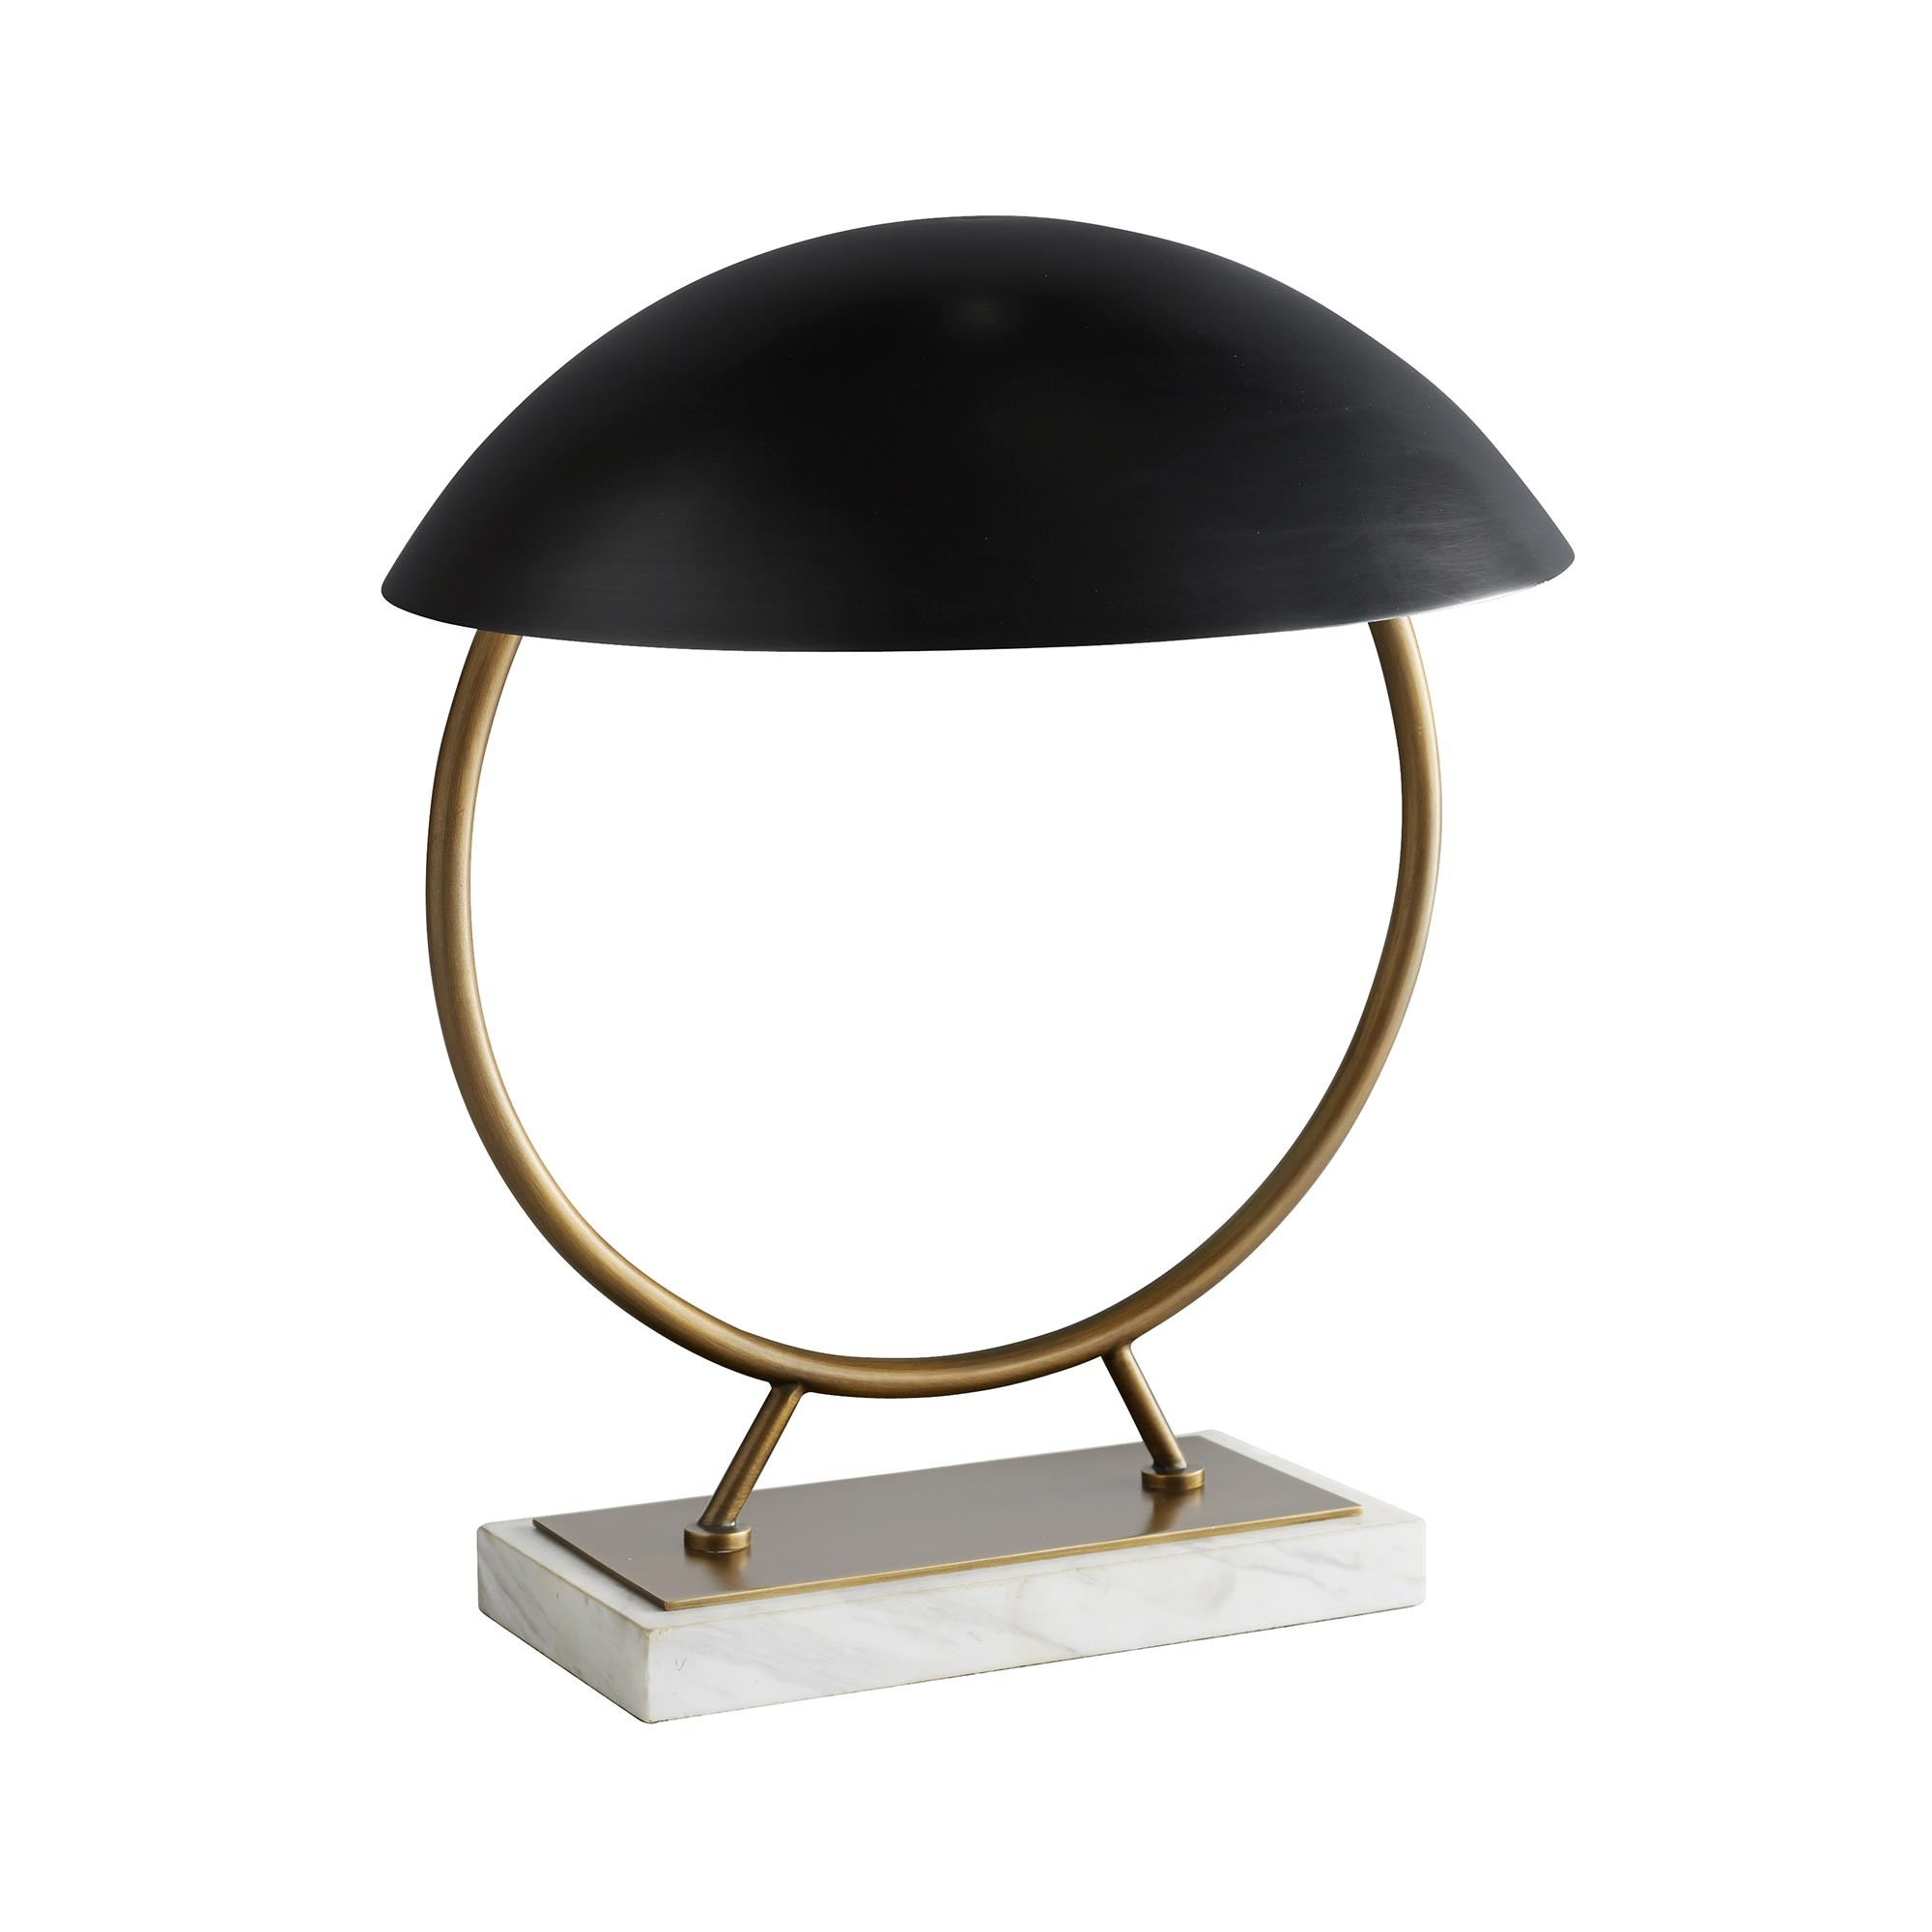 Pulp Home - Locklan Lamp. A modern black, brass and white marble table lamp